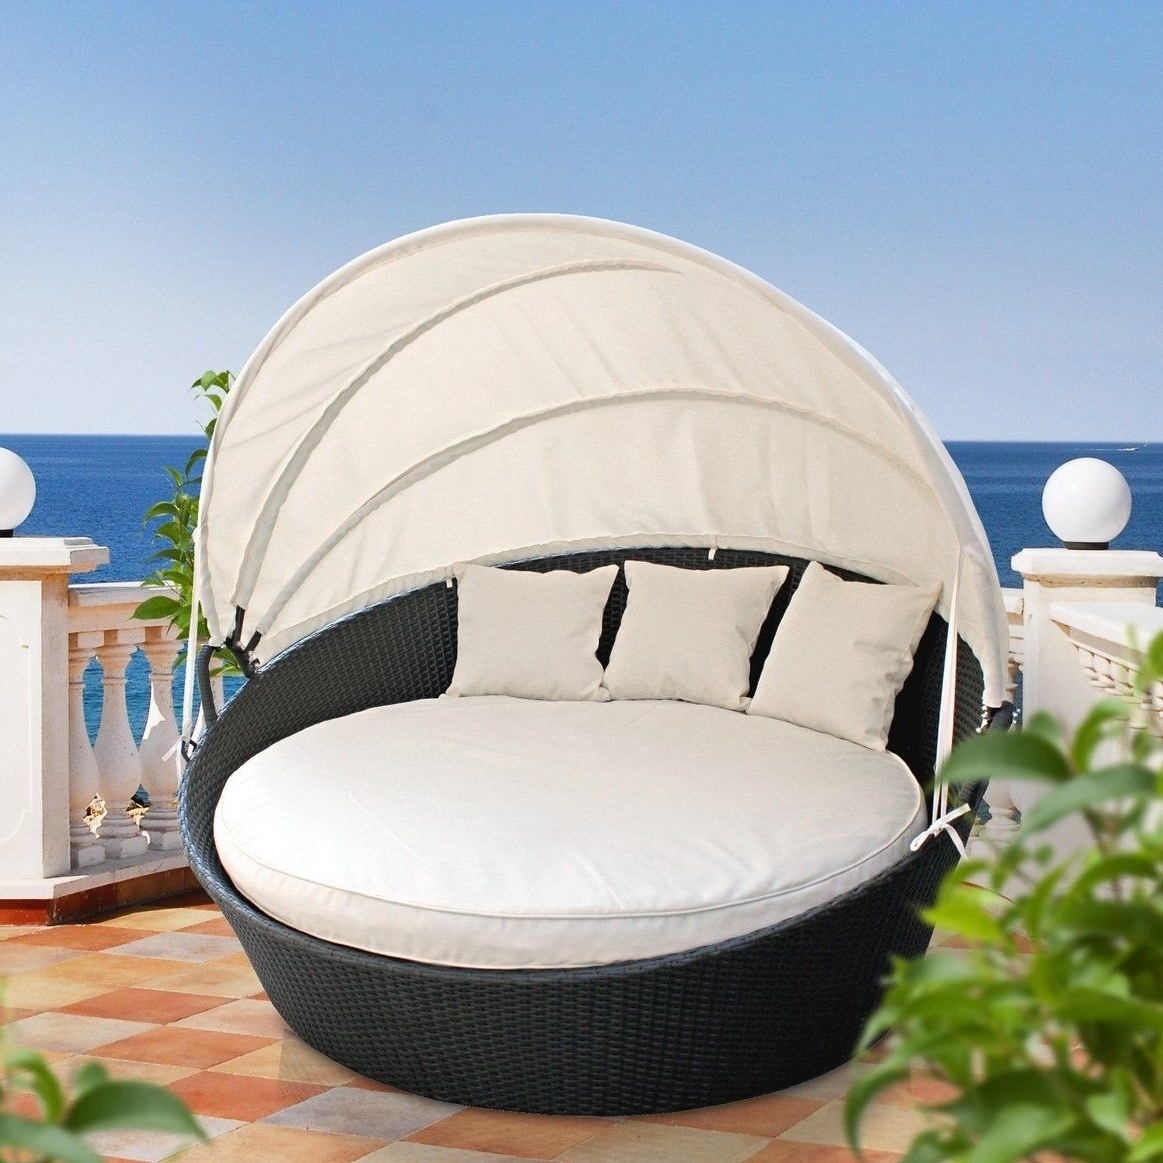 Famous Brentwood Canopy Patio Daybeds With Cushions With Regard To Brentwood Canopy Outdoor Patio Daybed With Cushions (View 6 of 25)